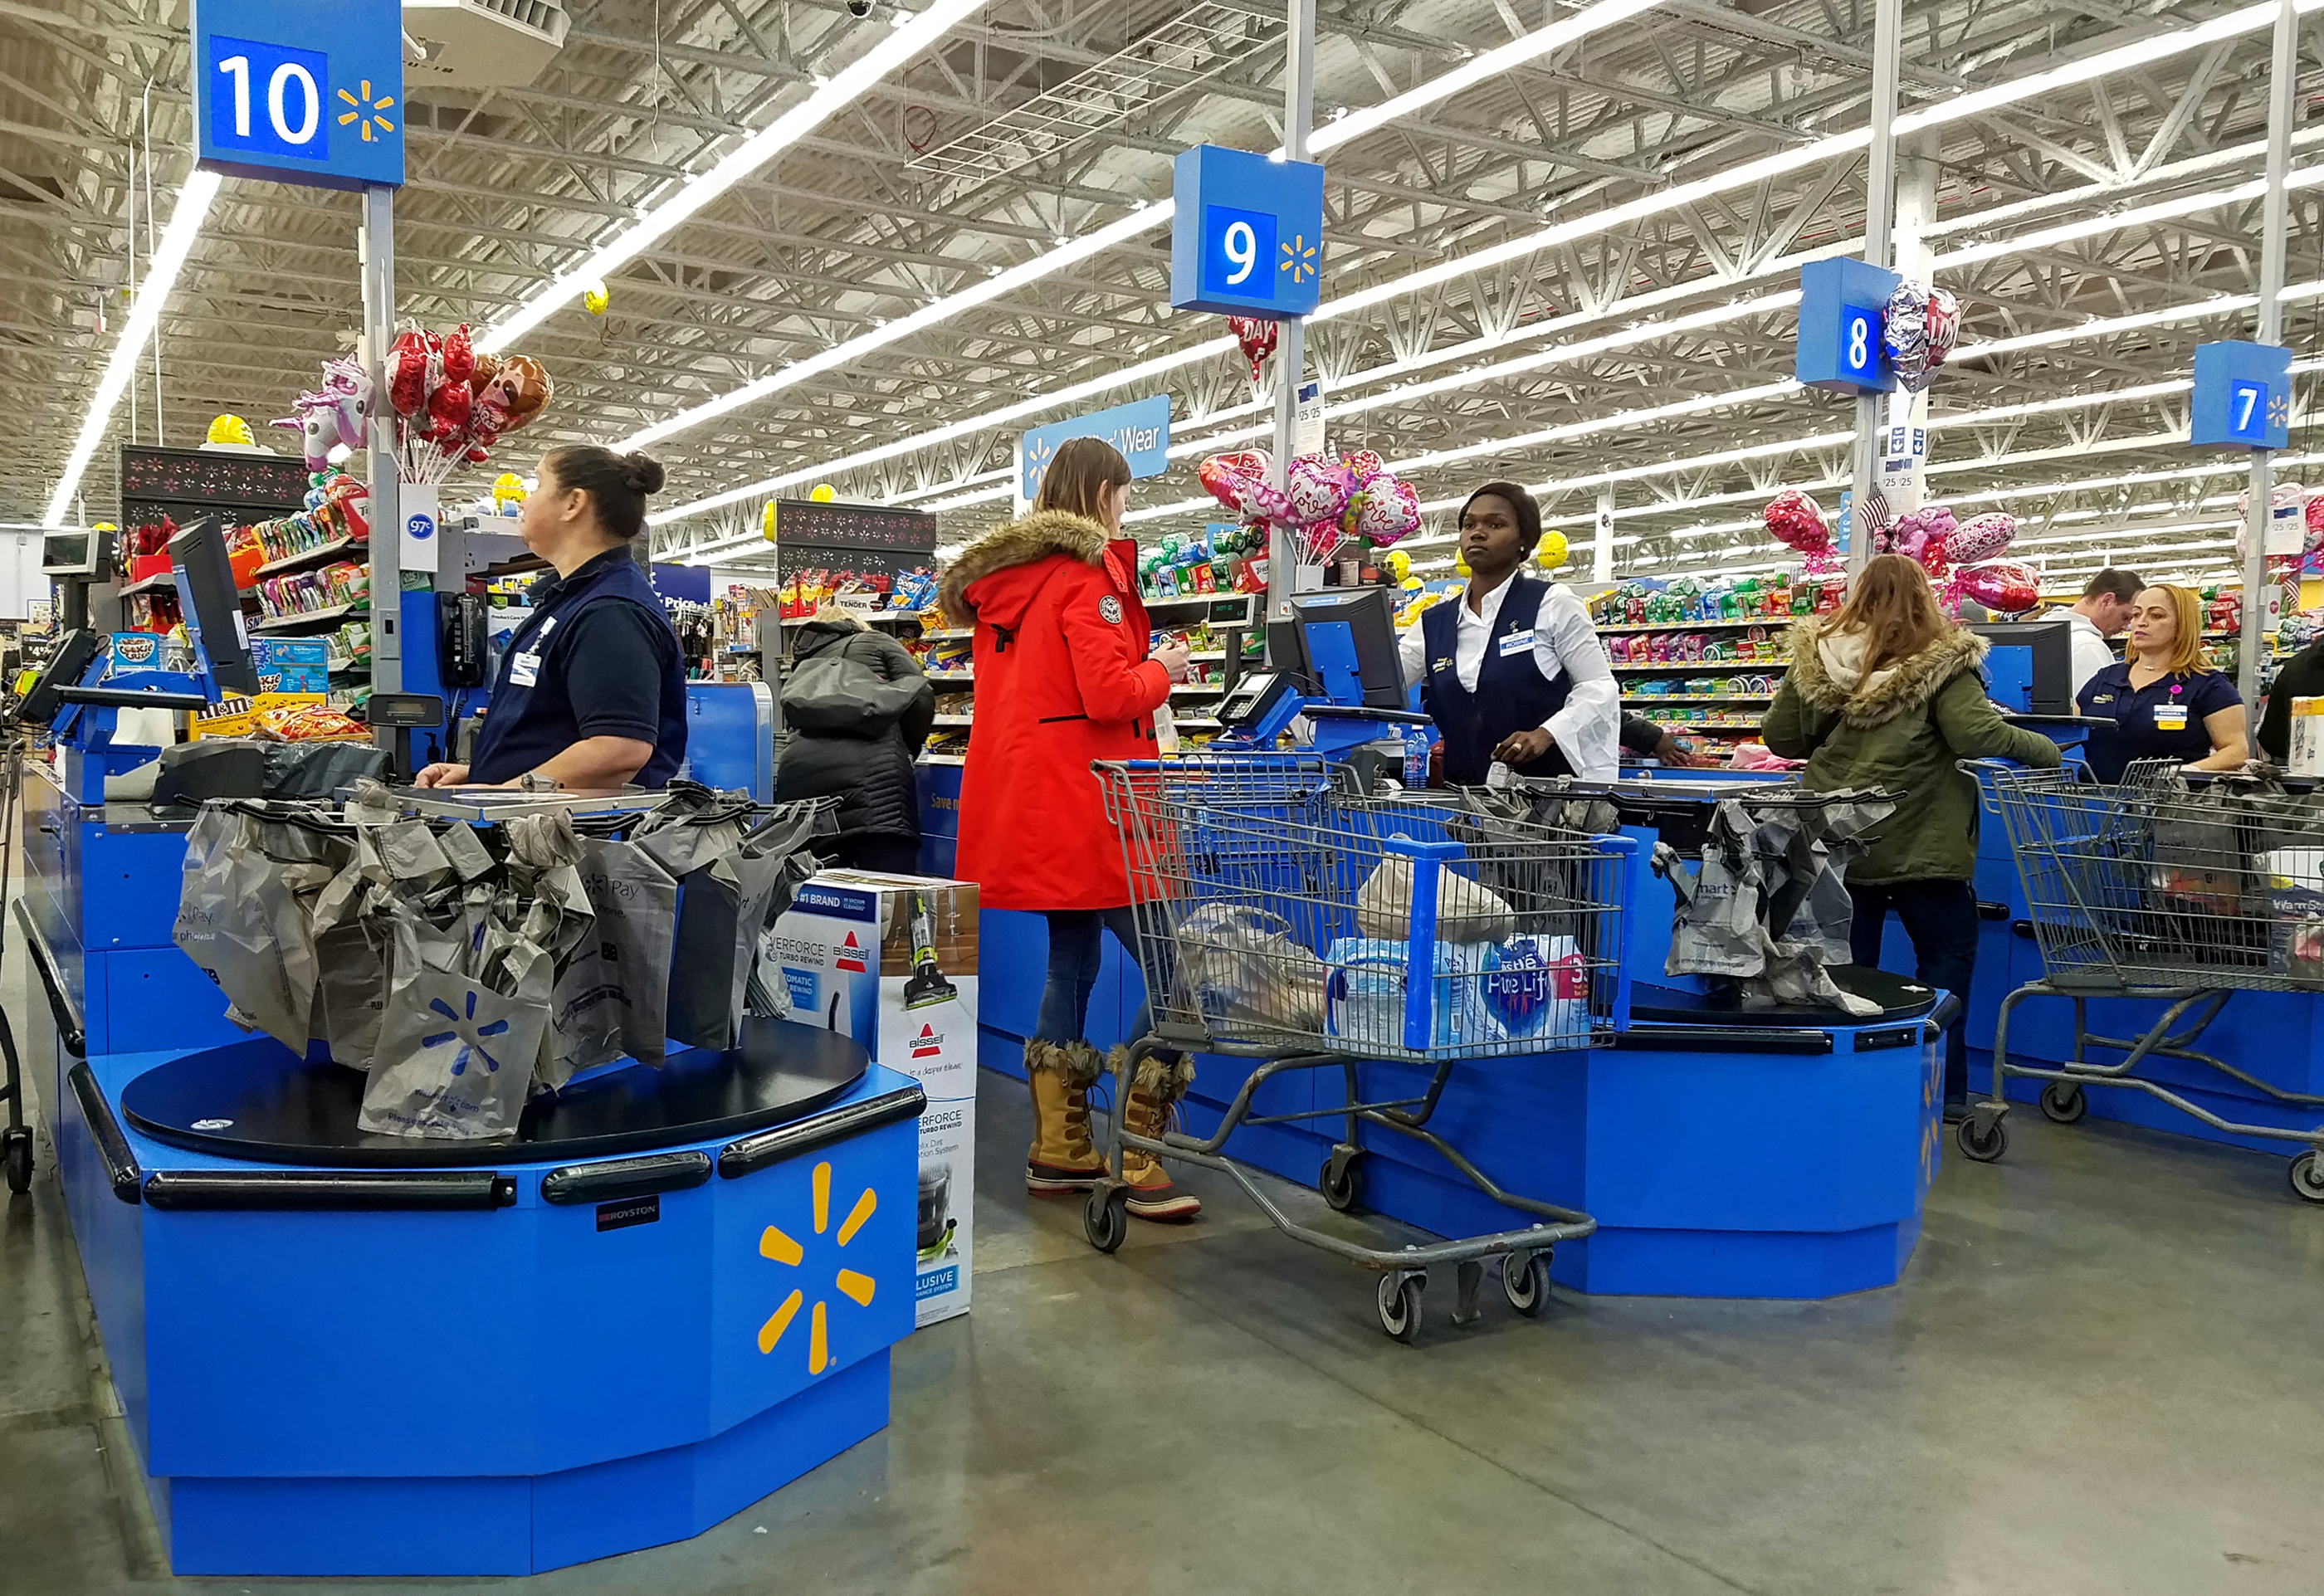 walmart largest employer in the united states introduces robots